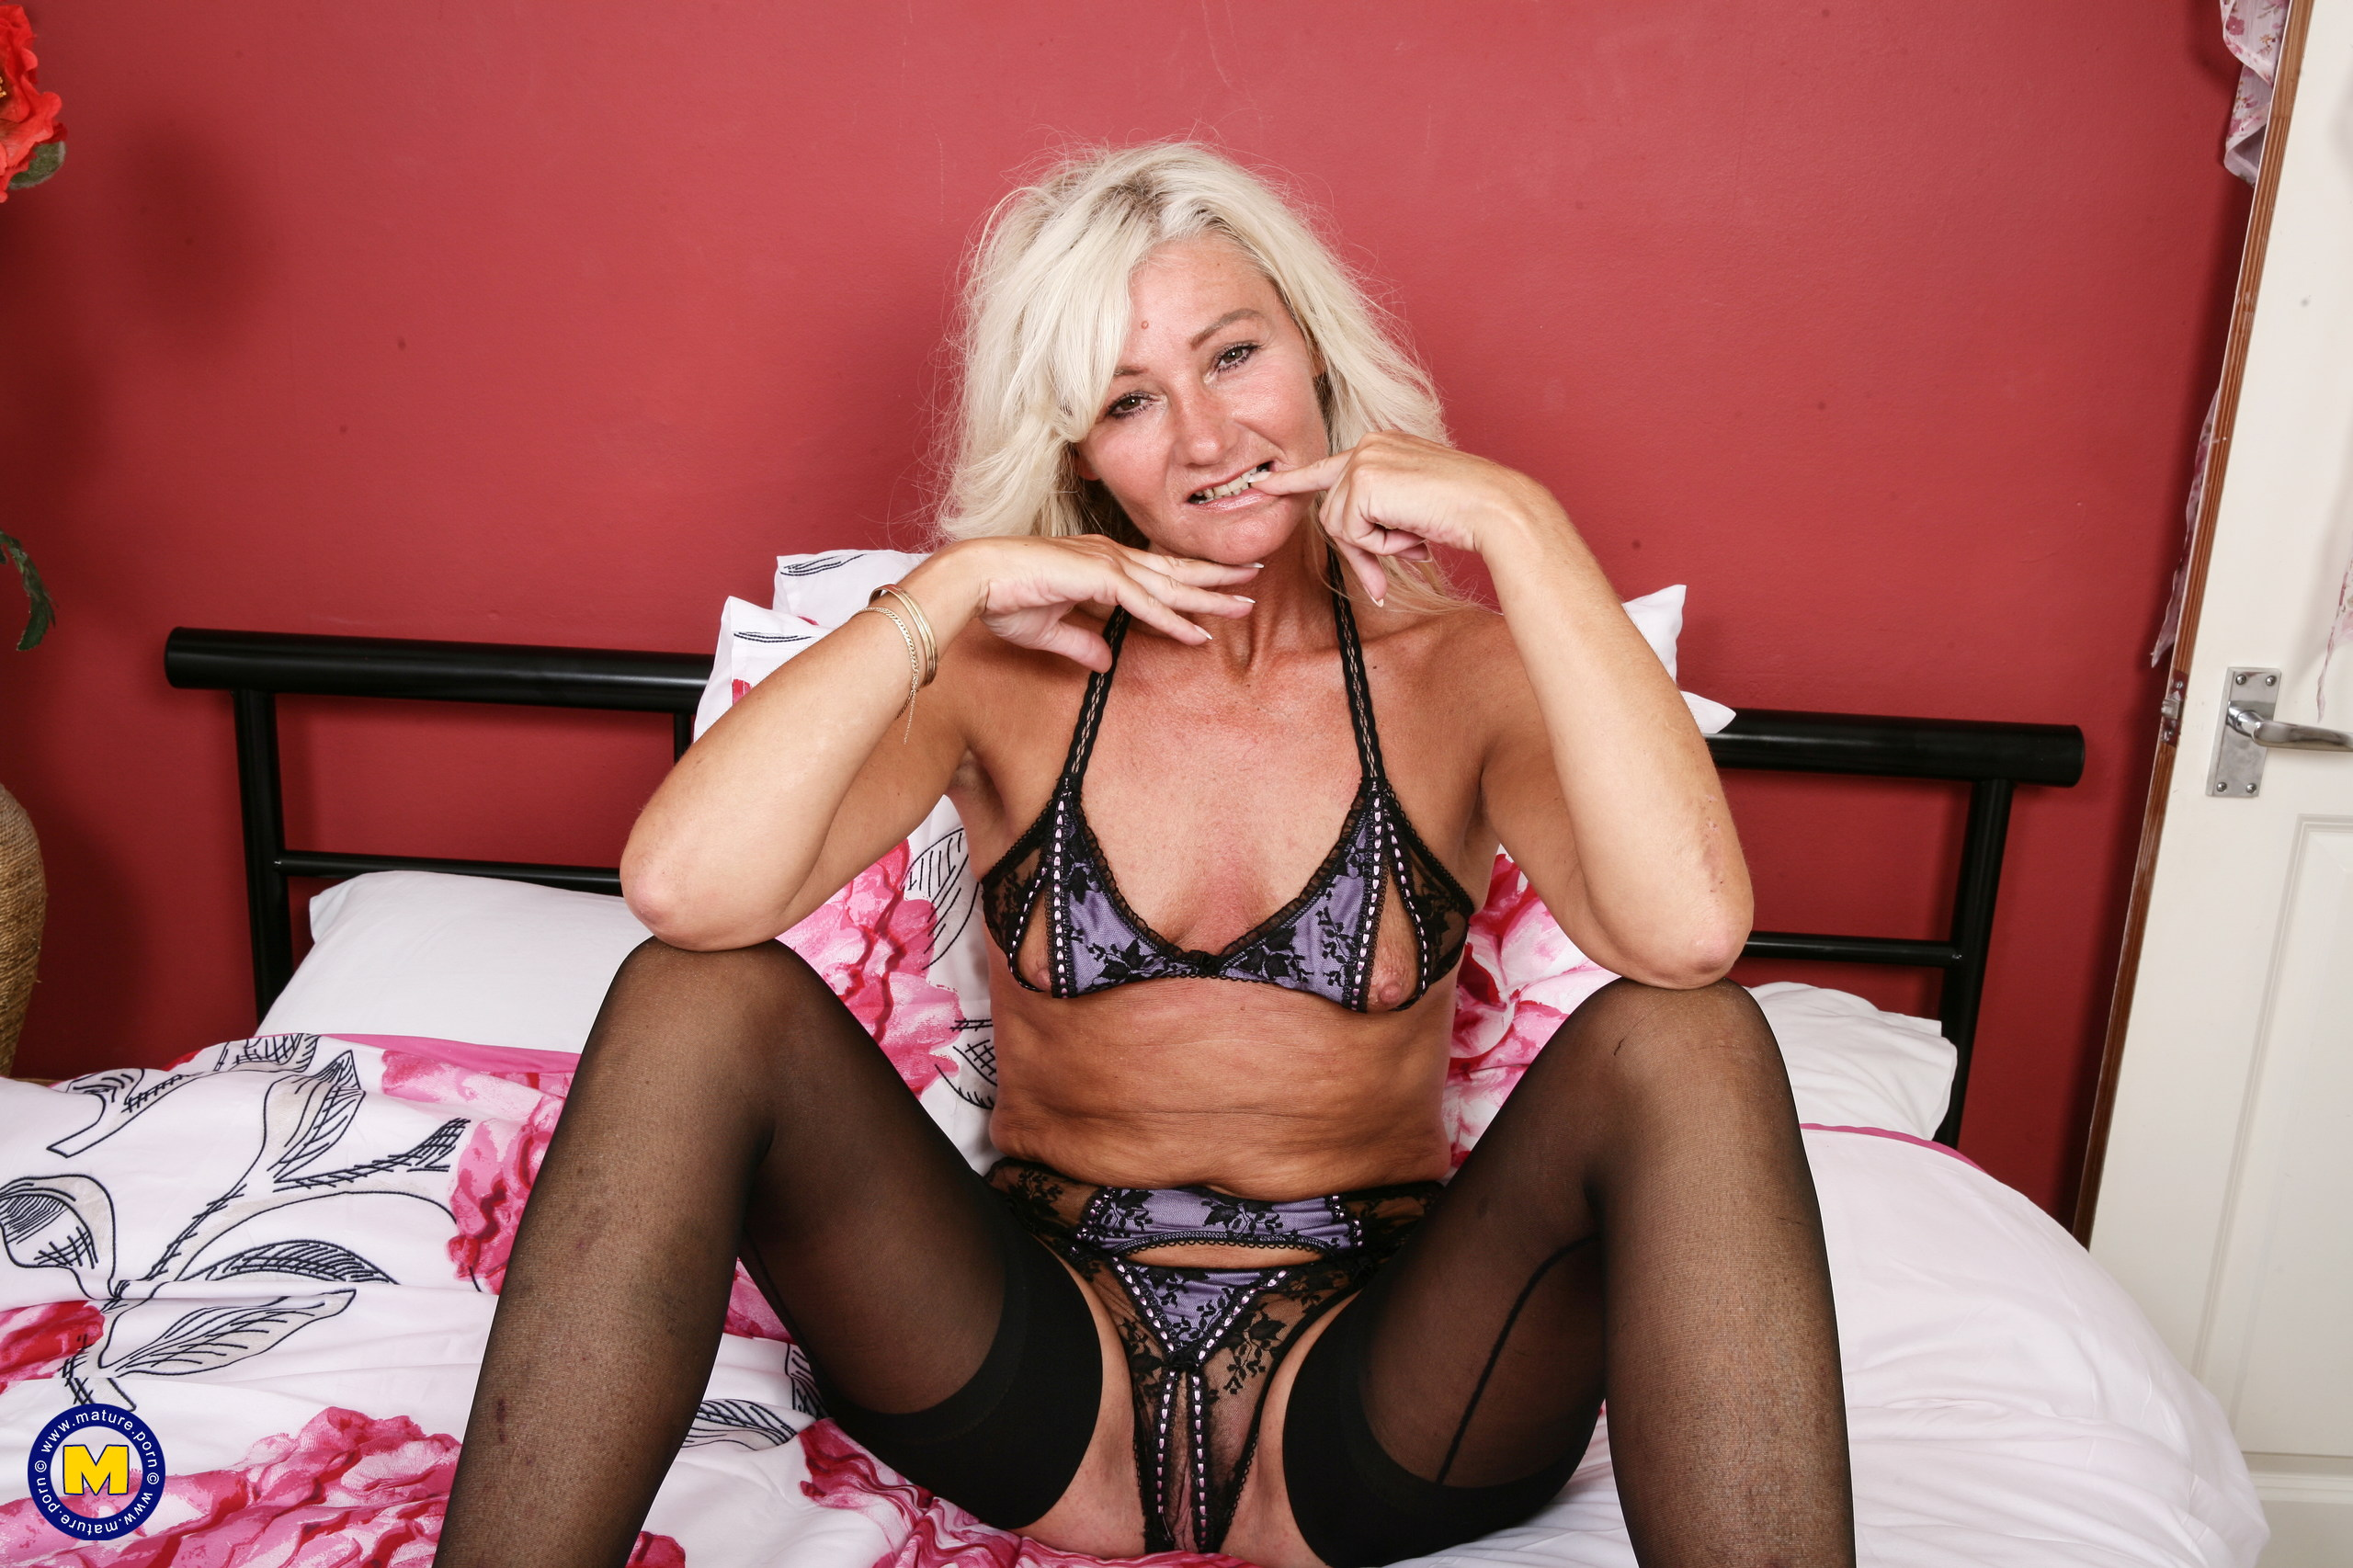 Ultra-kinky housewife from the uk toying with herself